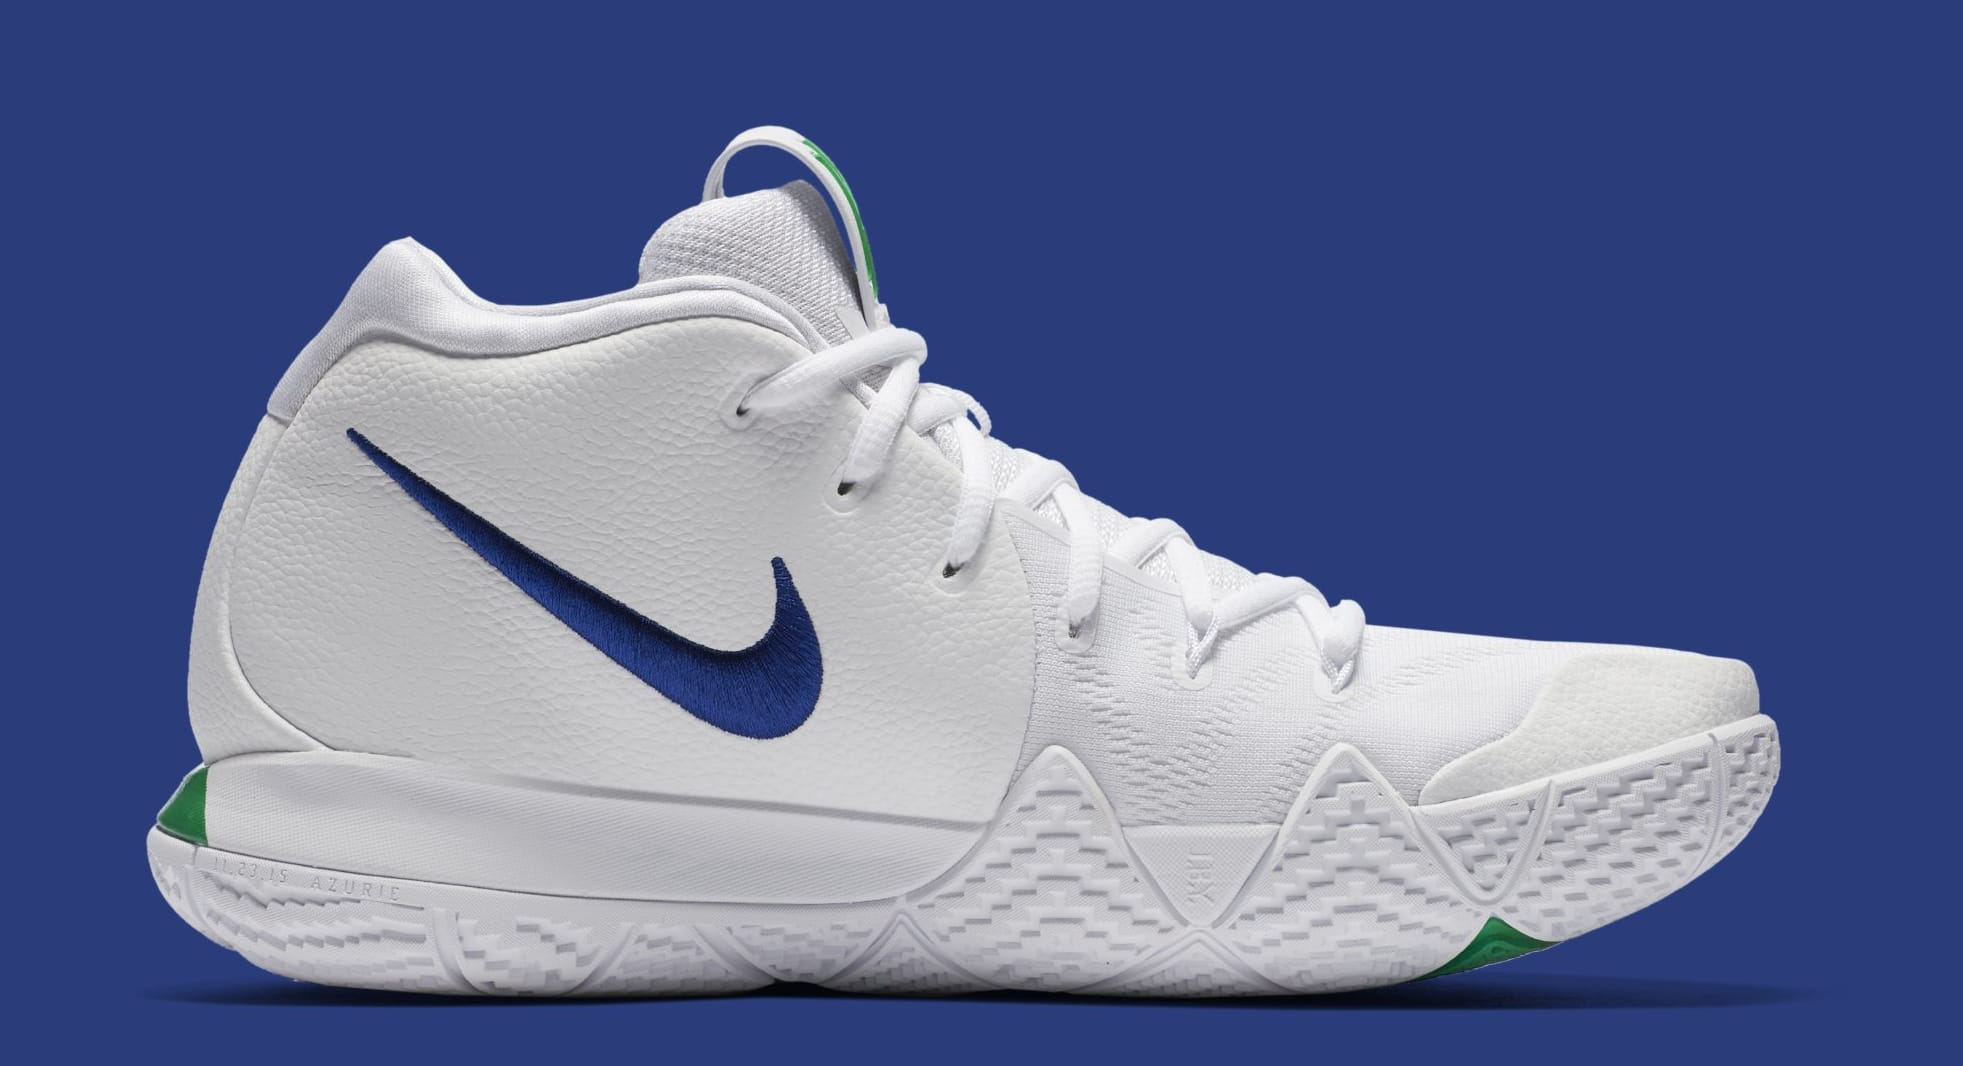 half off 0e9fc 48199 Nike Kyrie 4 White Deep Royal Blue Release Date 943806-103 ...